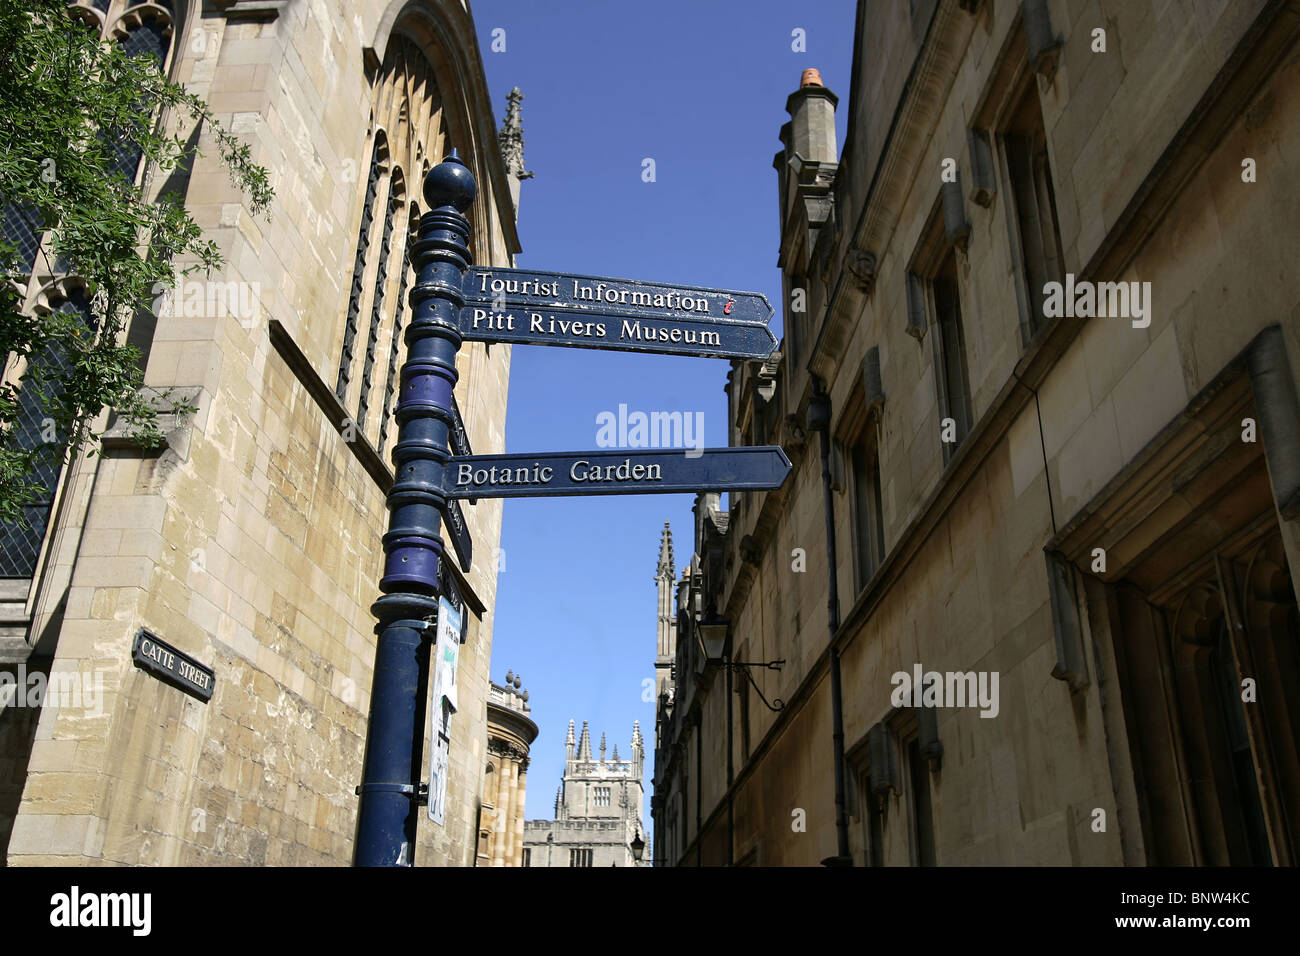 Finger signpost in Oxford City showing directions to the Pitt Rivers Museum, Botanic Gardens and the Tourist Information - Stock Image